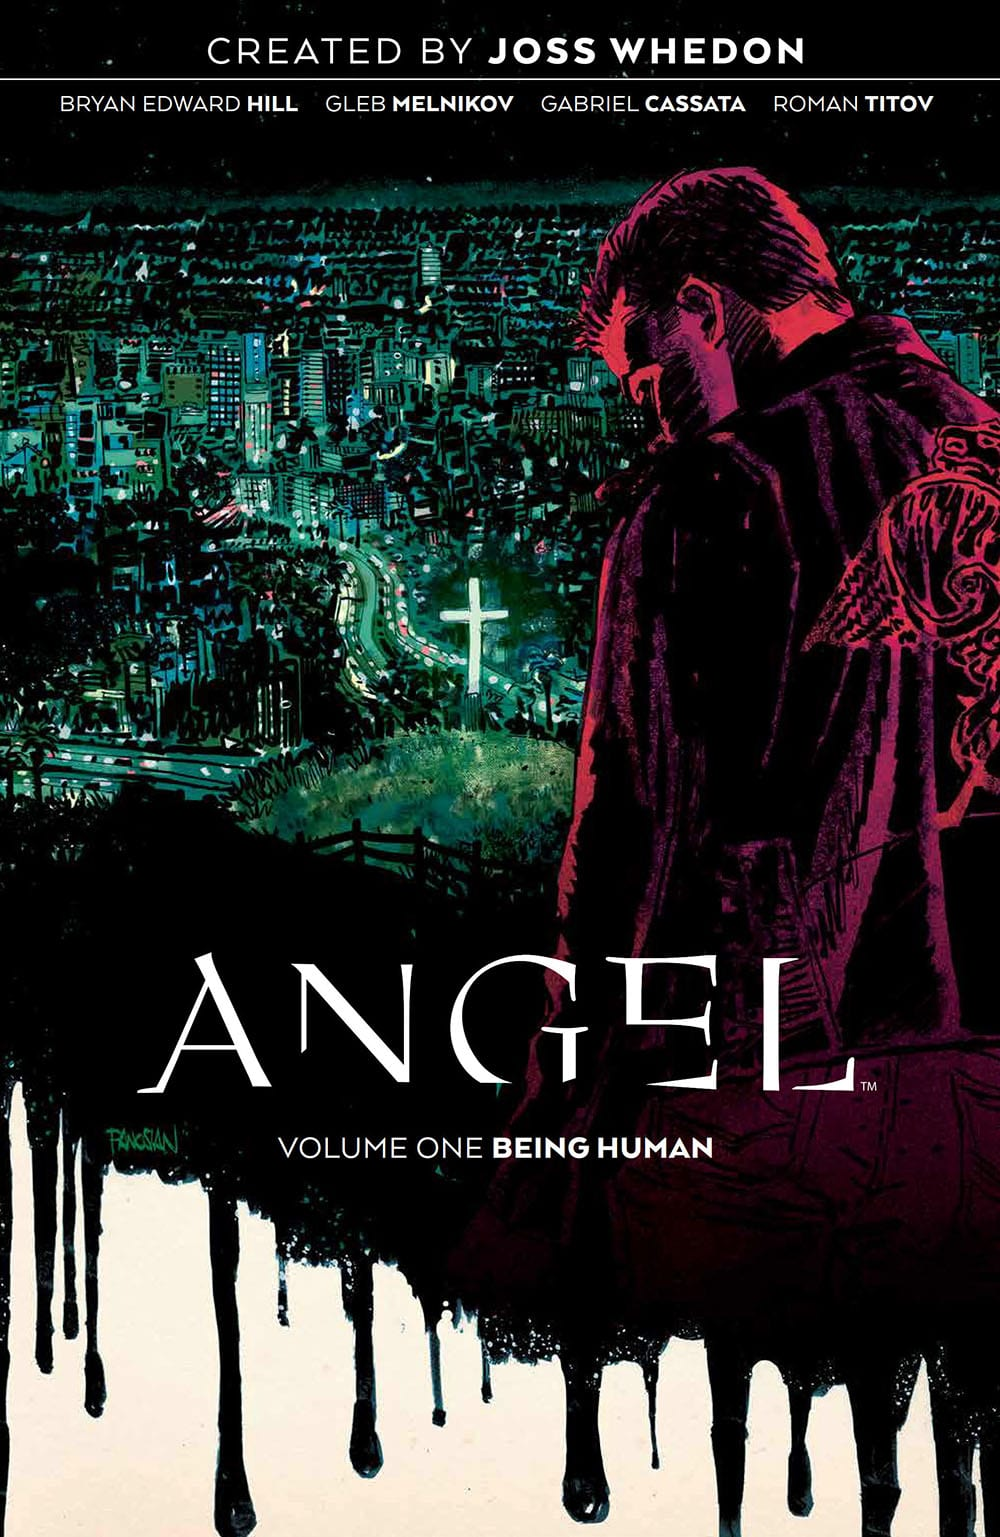 [EXCLUSIVE INTERVIEW] ANGEL's Bryan Edward Hill Talks Real Ghosts, Twitter, and the Nature of Evil 1